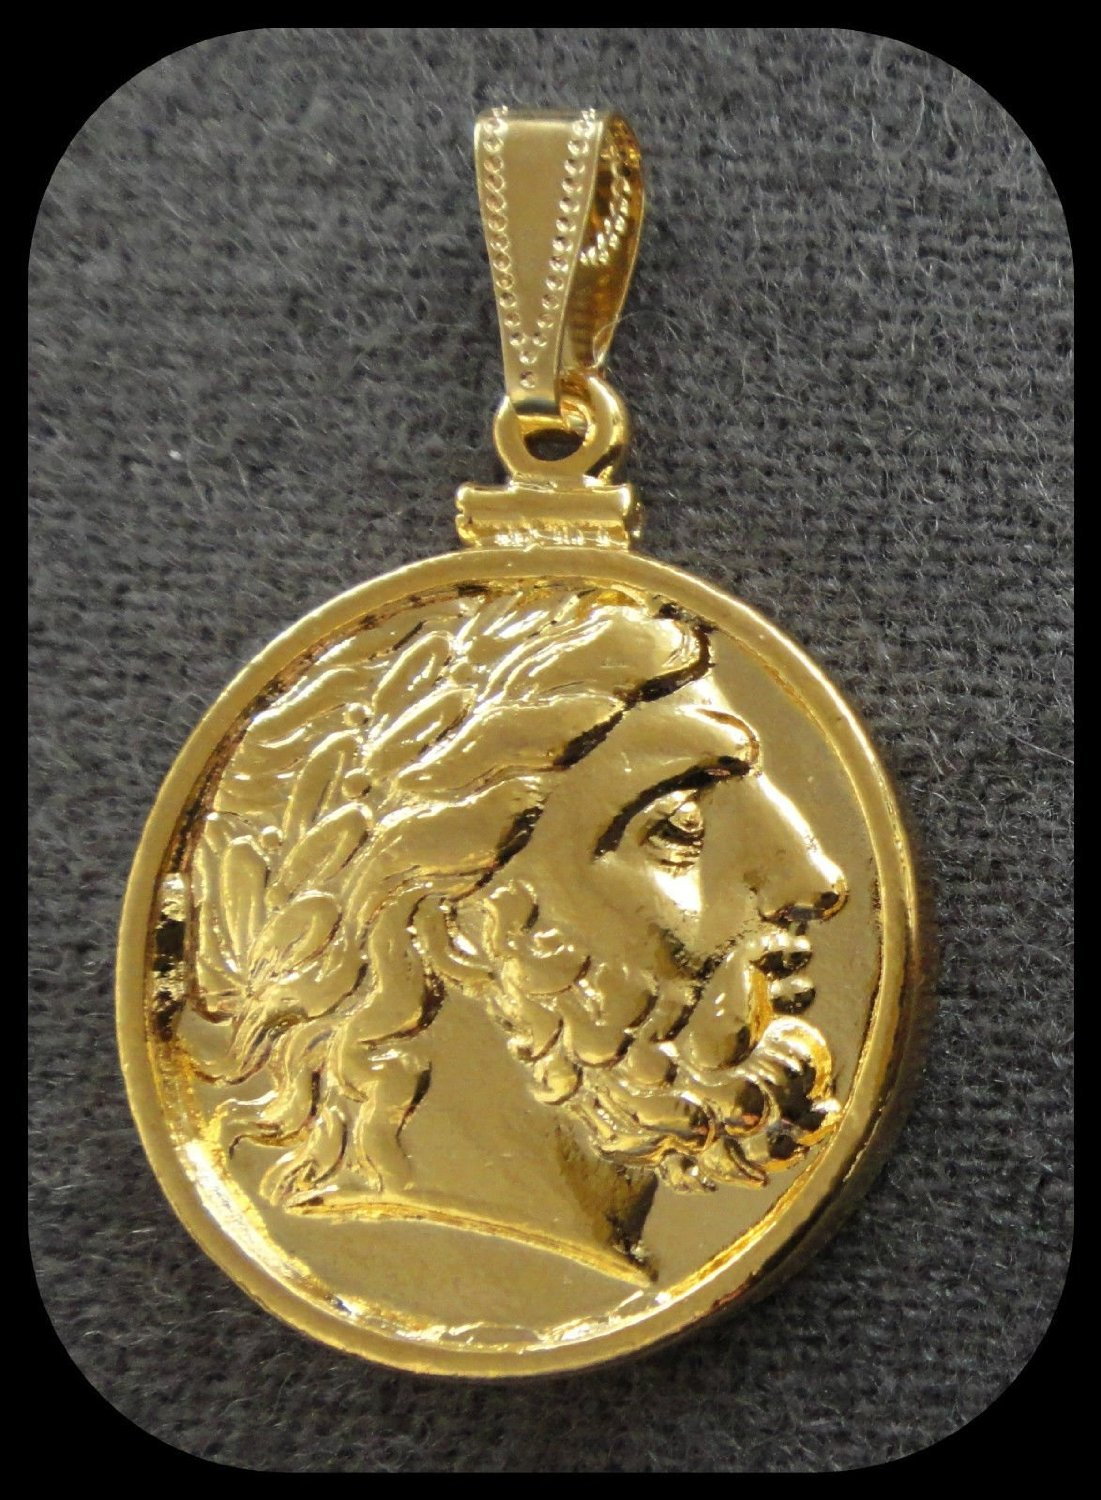 coin pendant zeus king of gods  k gold plated amazoncouk . coin pendant zeus king of gods  k gold plated amazoncouk kitchen home